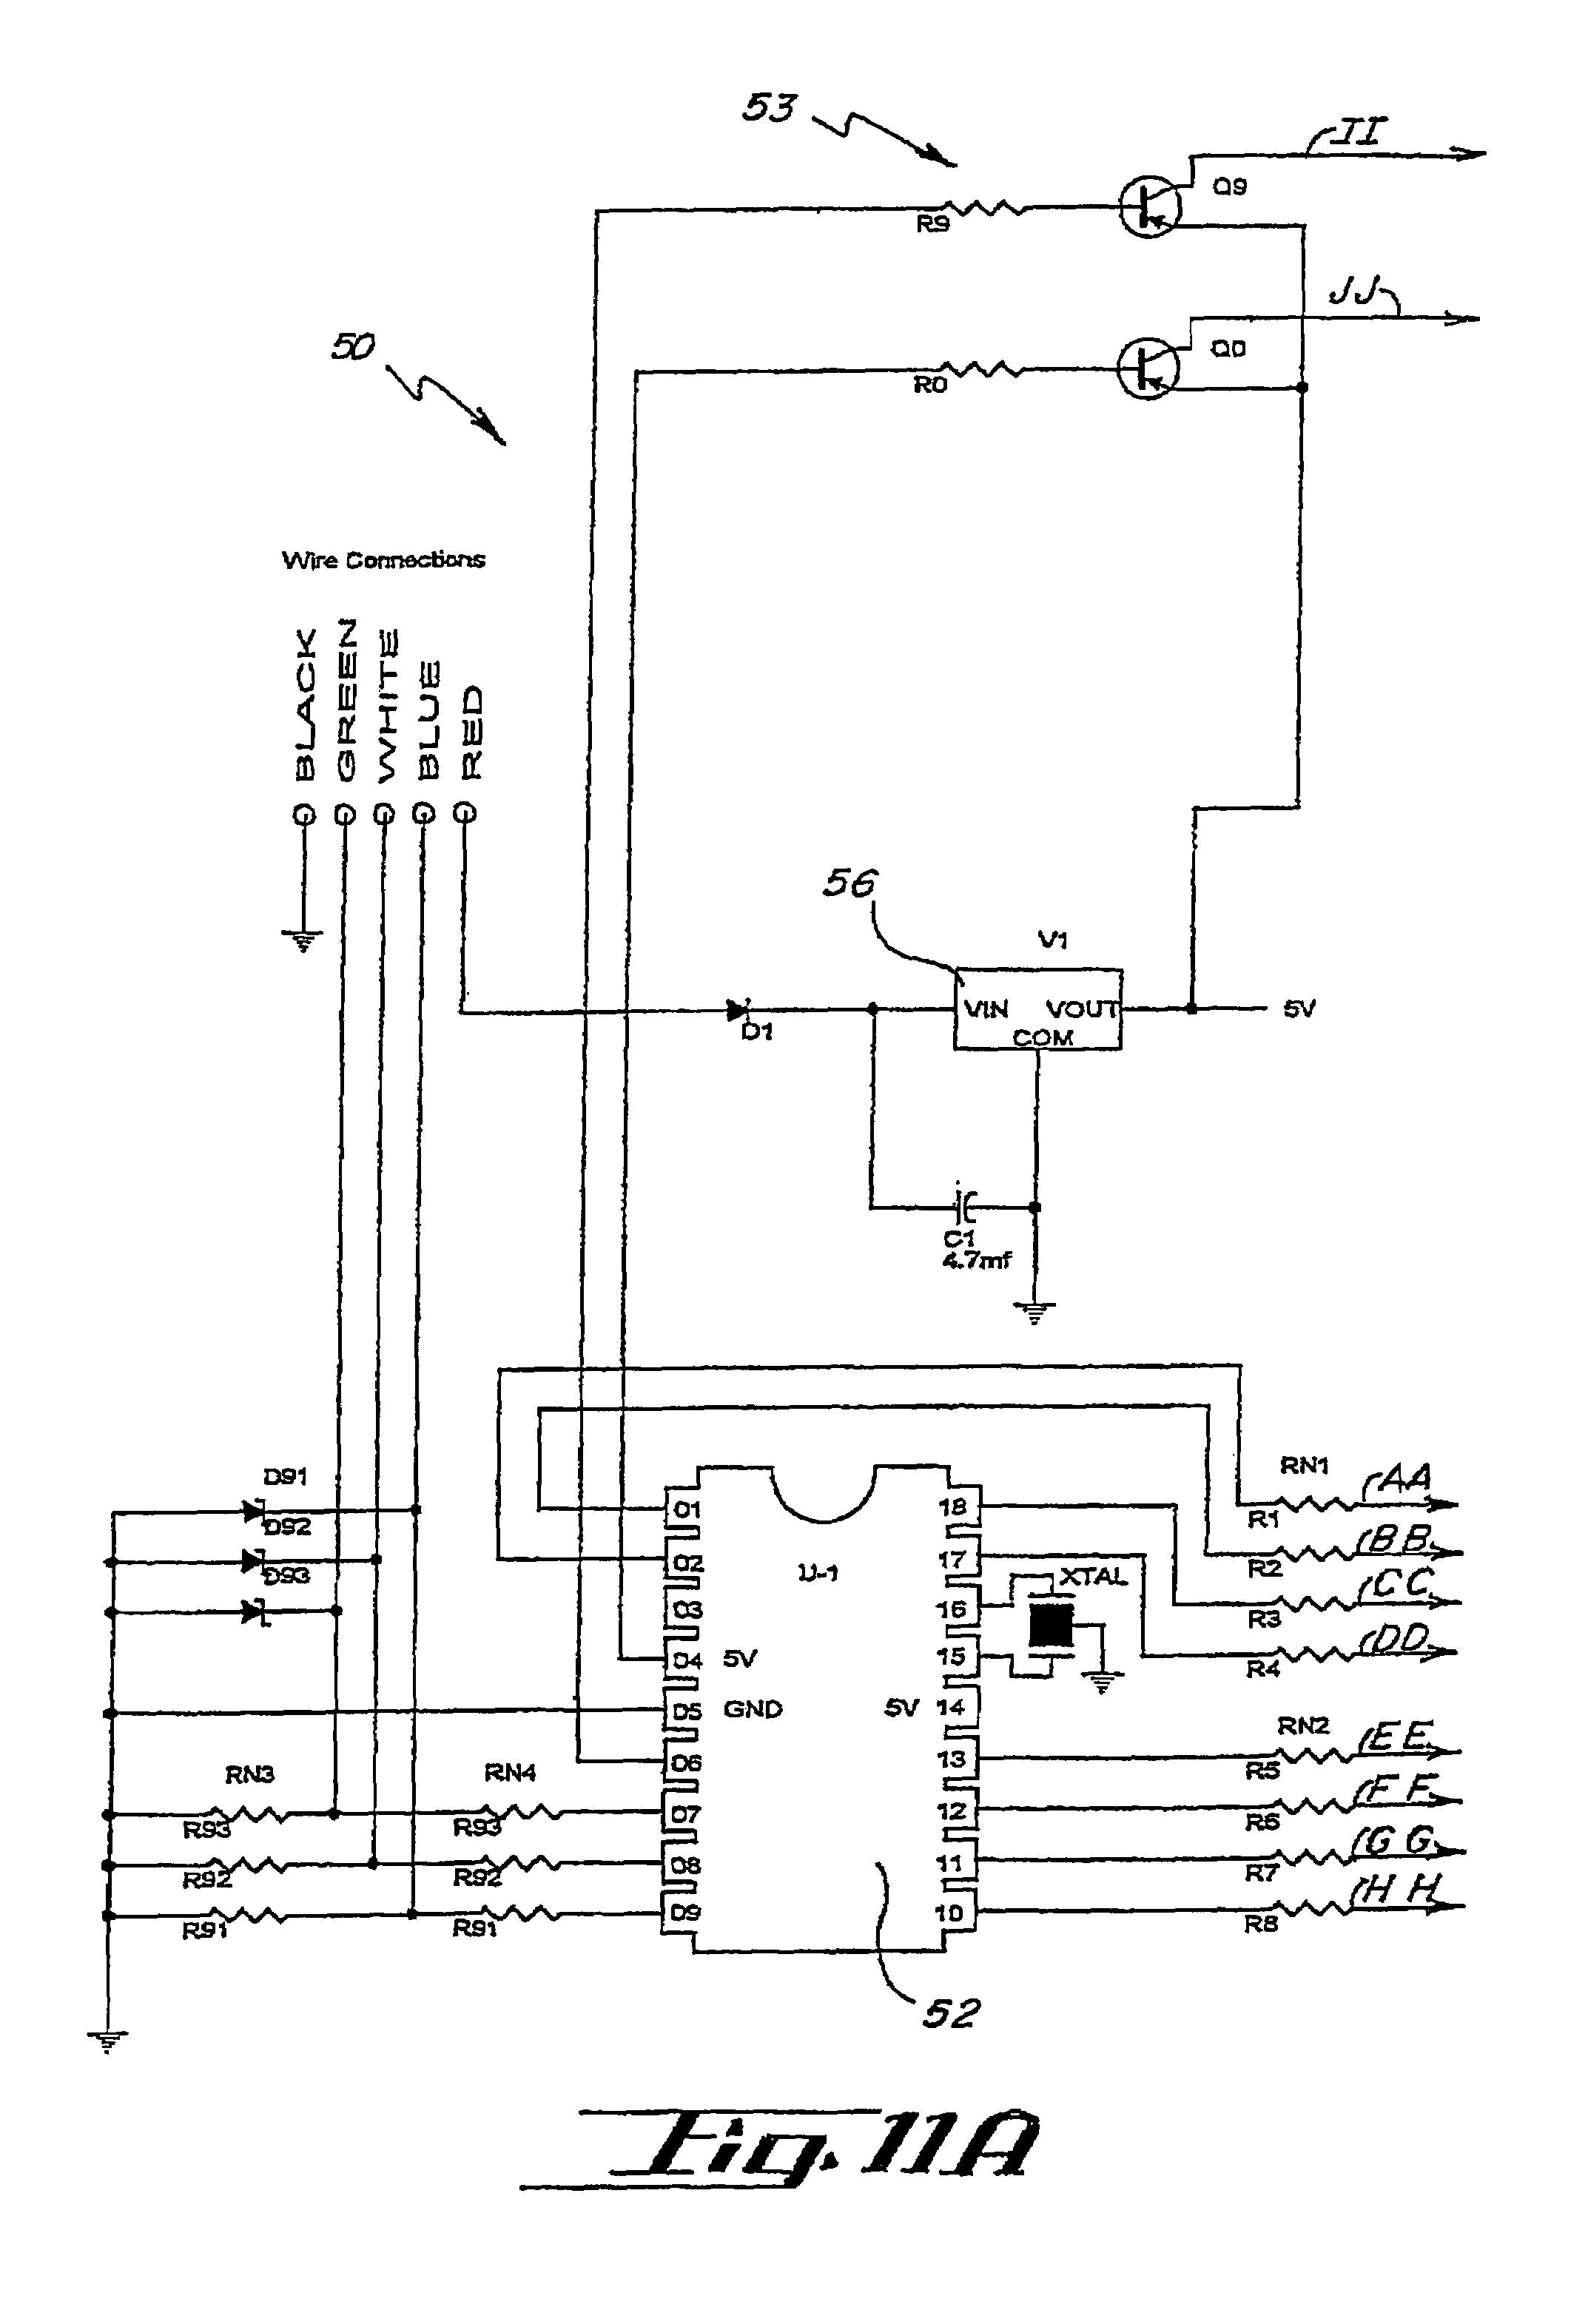 Best Of Wiring Diagram For Shop Lights Diagrams Digramssample Diagramimages Wiringdiagramsample Wiringdiagram With Images Diagram Shop Lighting